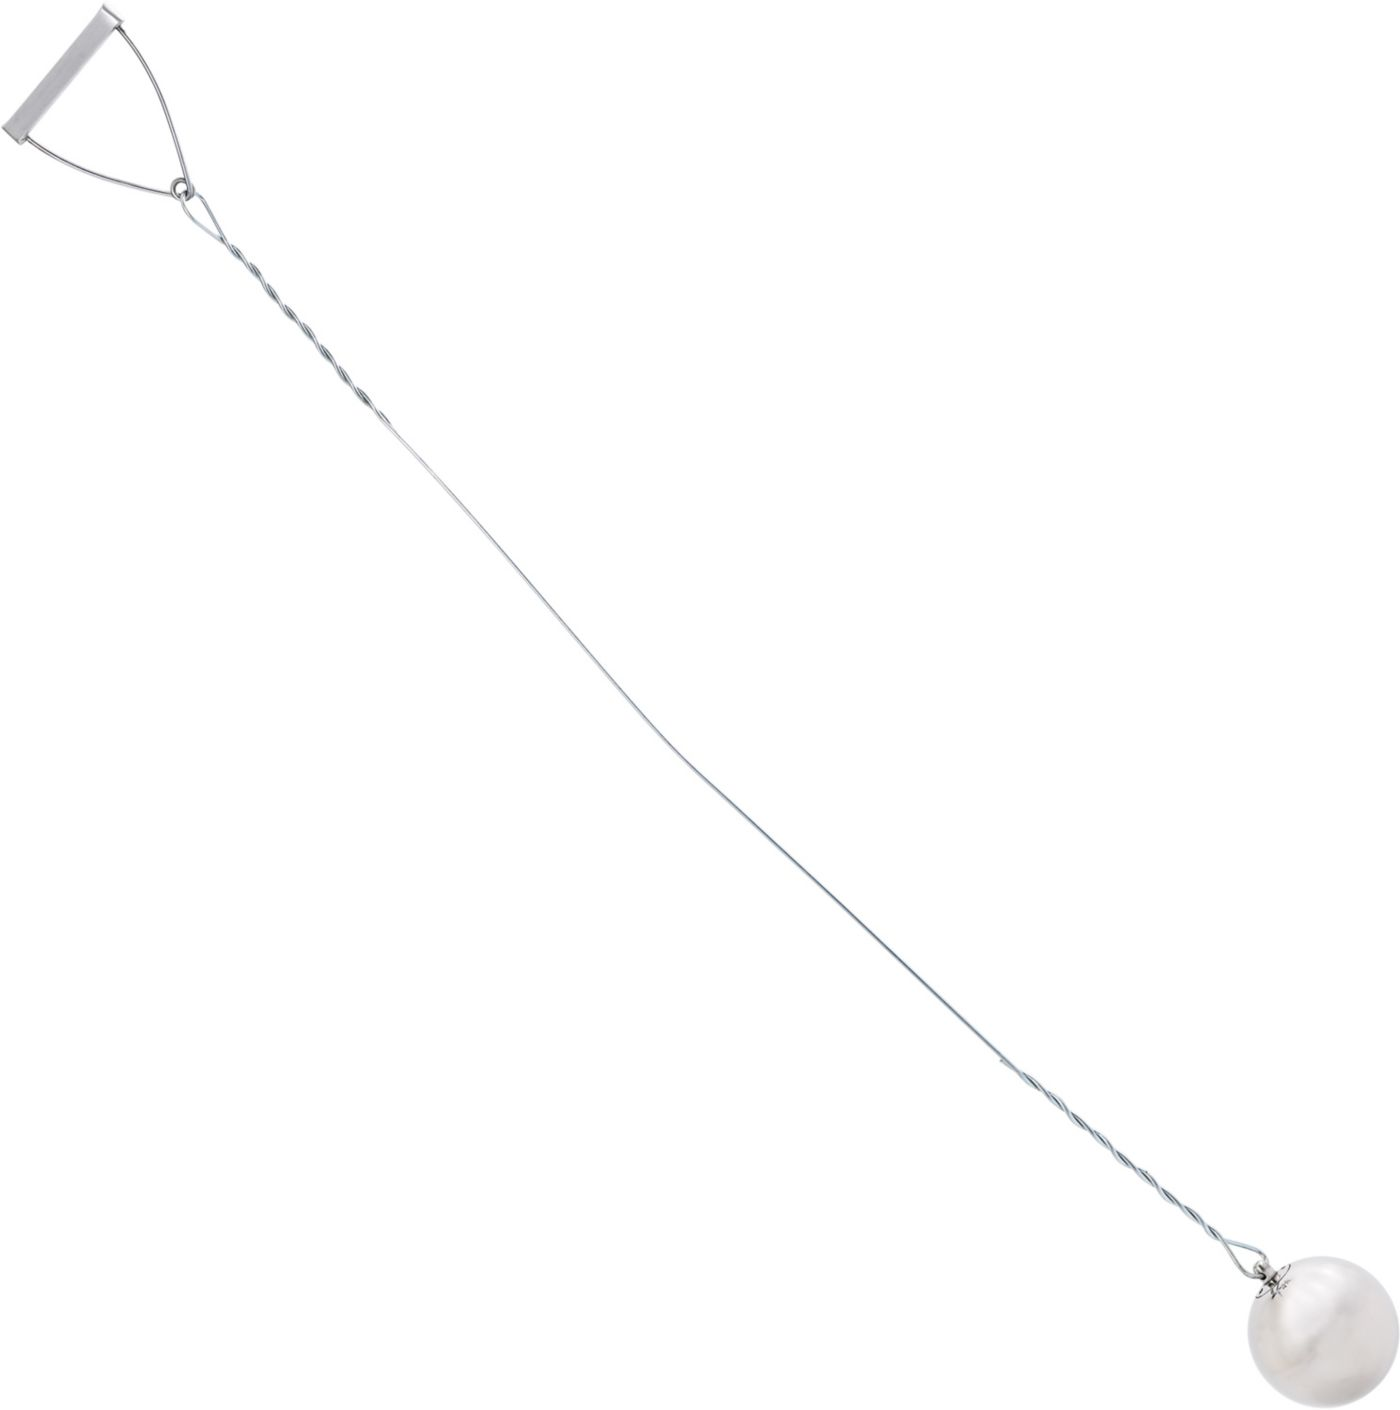 Gill Pacer 12 lb (103 mm) Stainless Steel Throwing Hammer